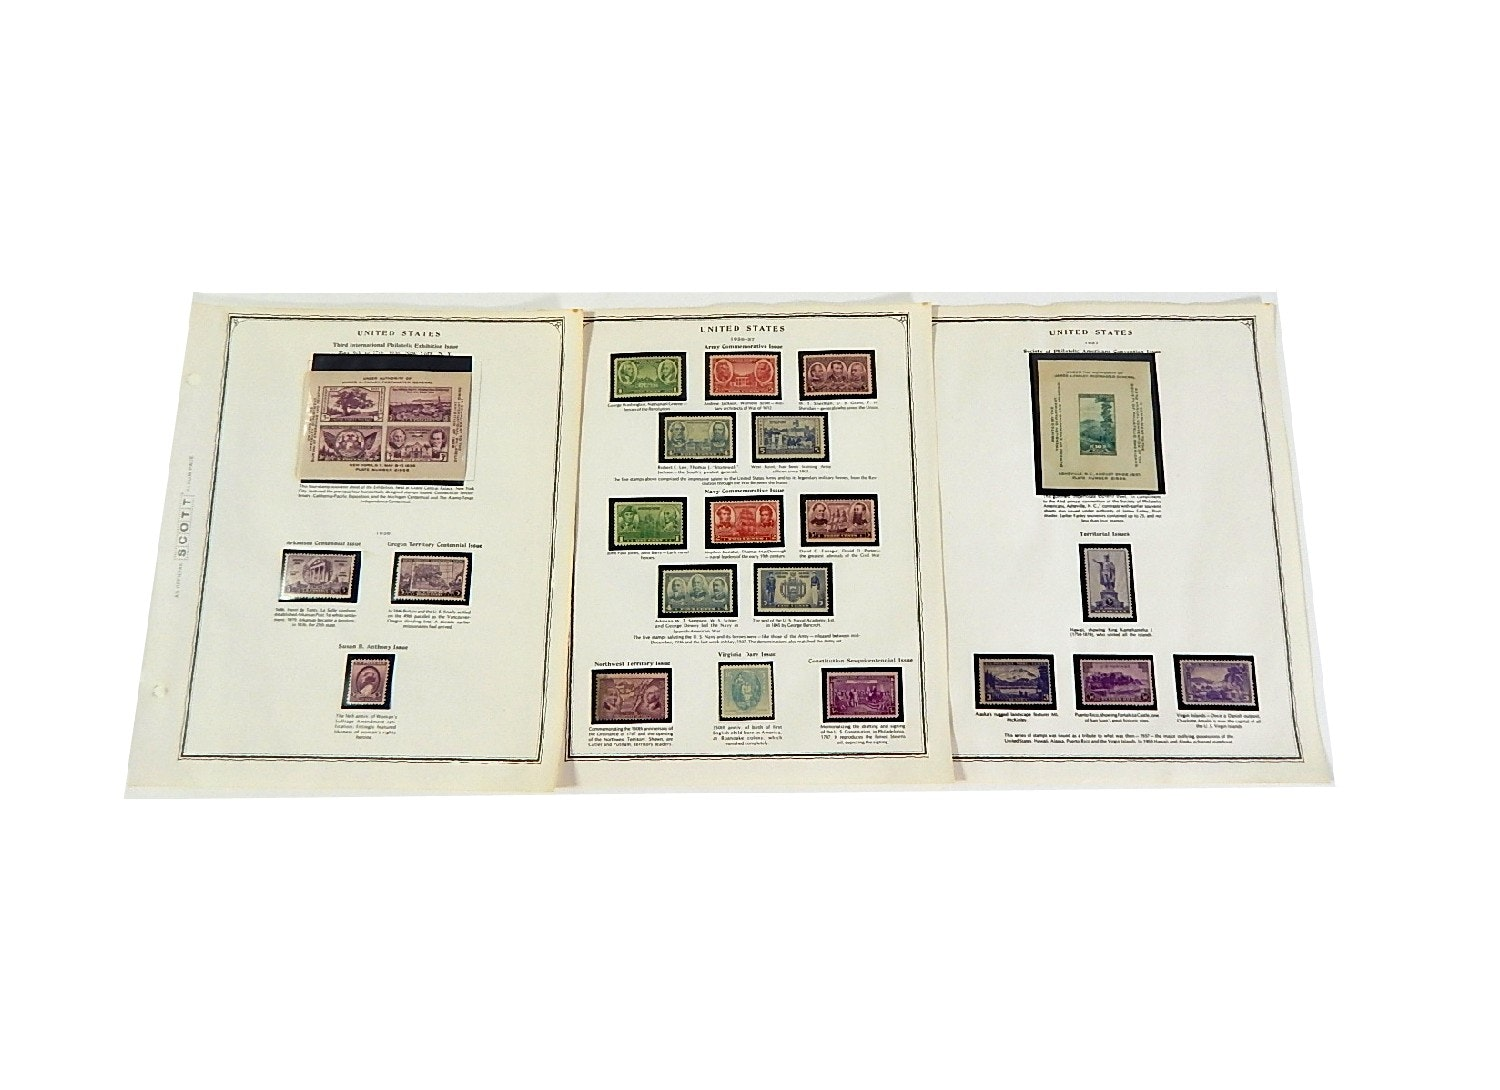 Early 1900s Stamp Collection from Scott Collectors Book - 1936 to 1937